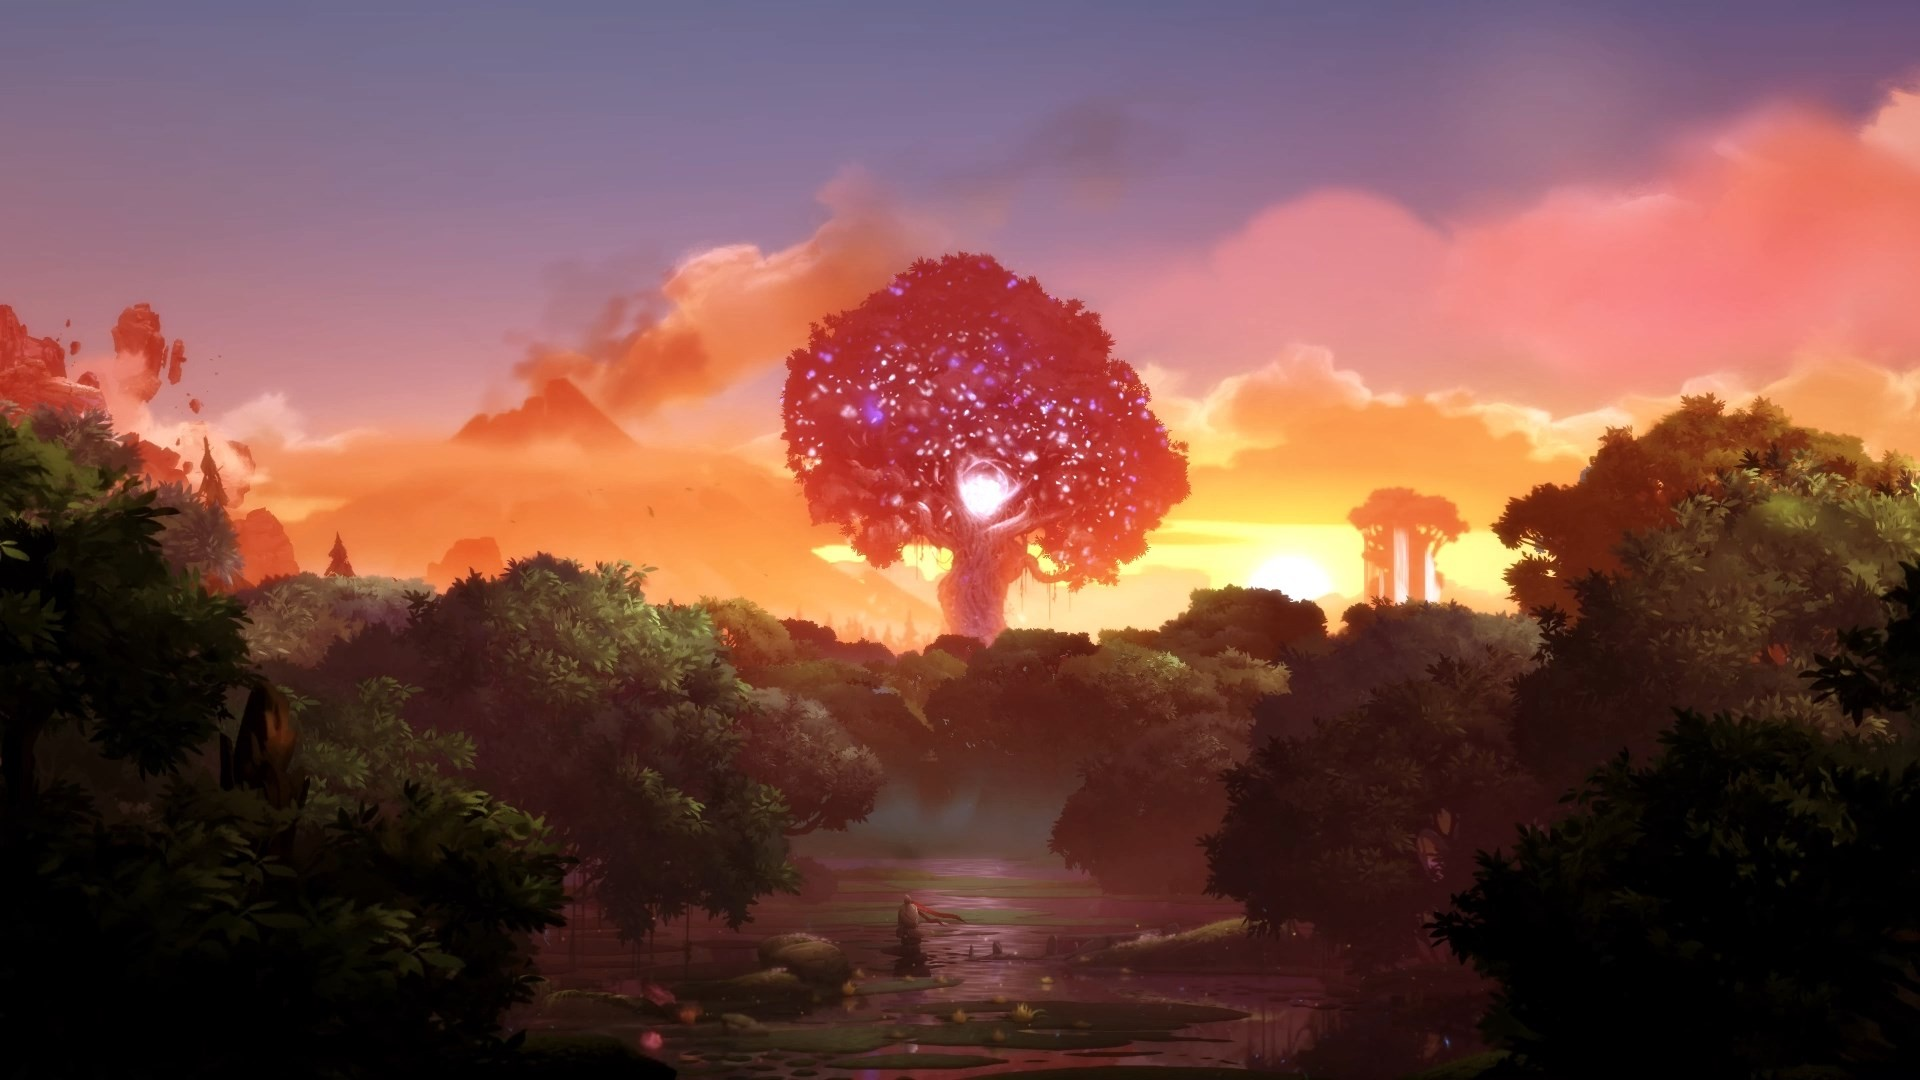 Autumn Hd Wallpaper 1080p Landscape Ori Ori And The Blind Forest Wallpapers Hd